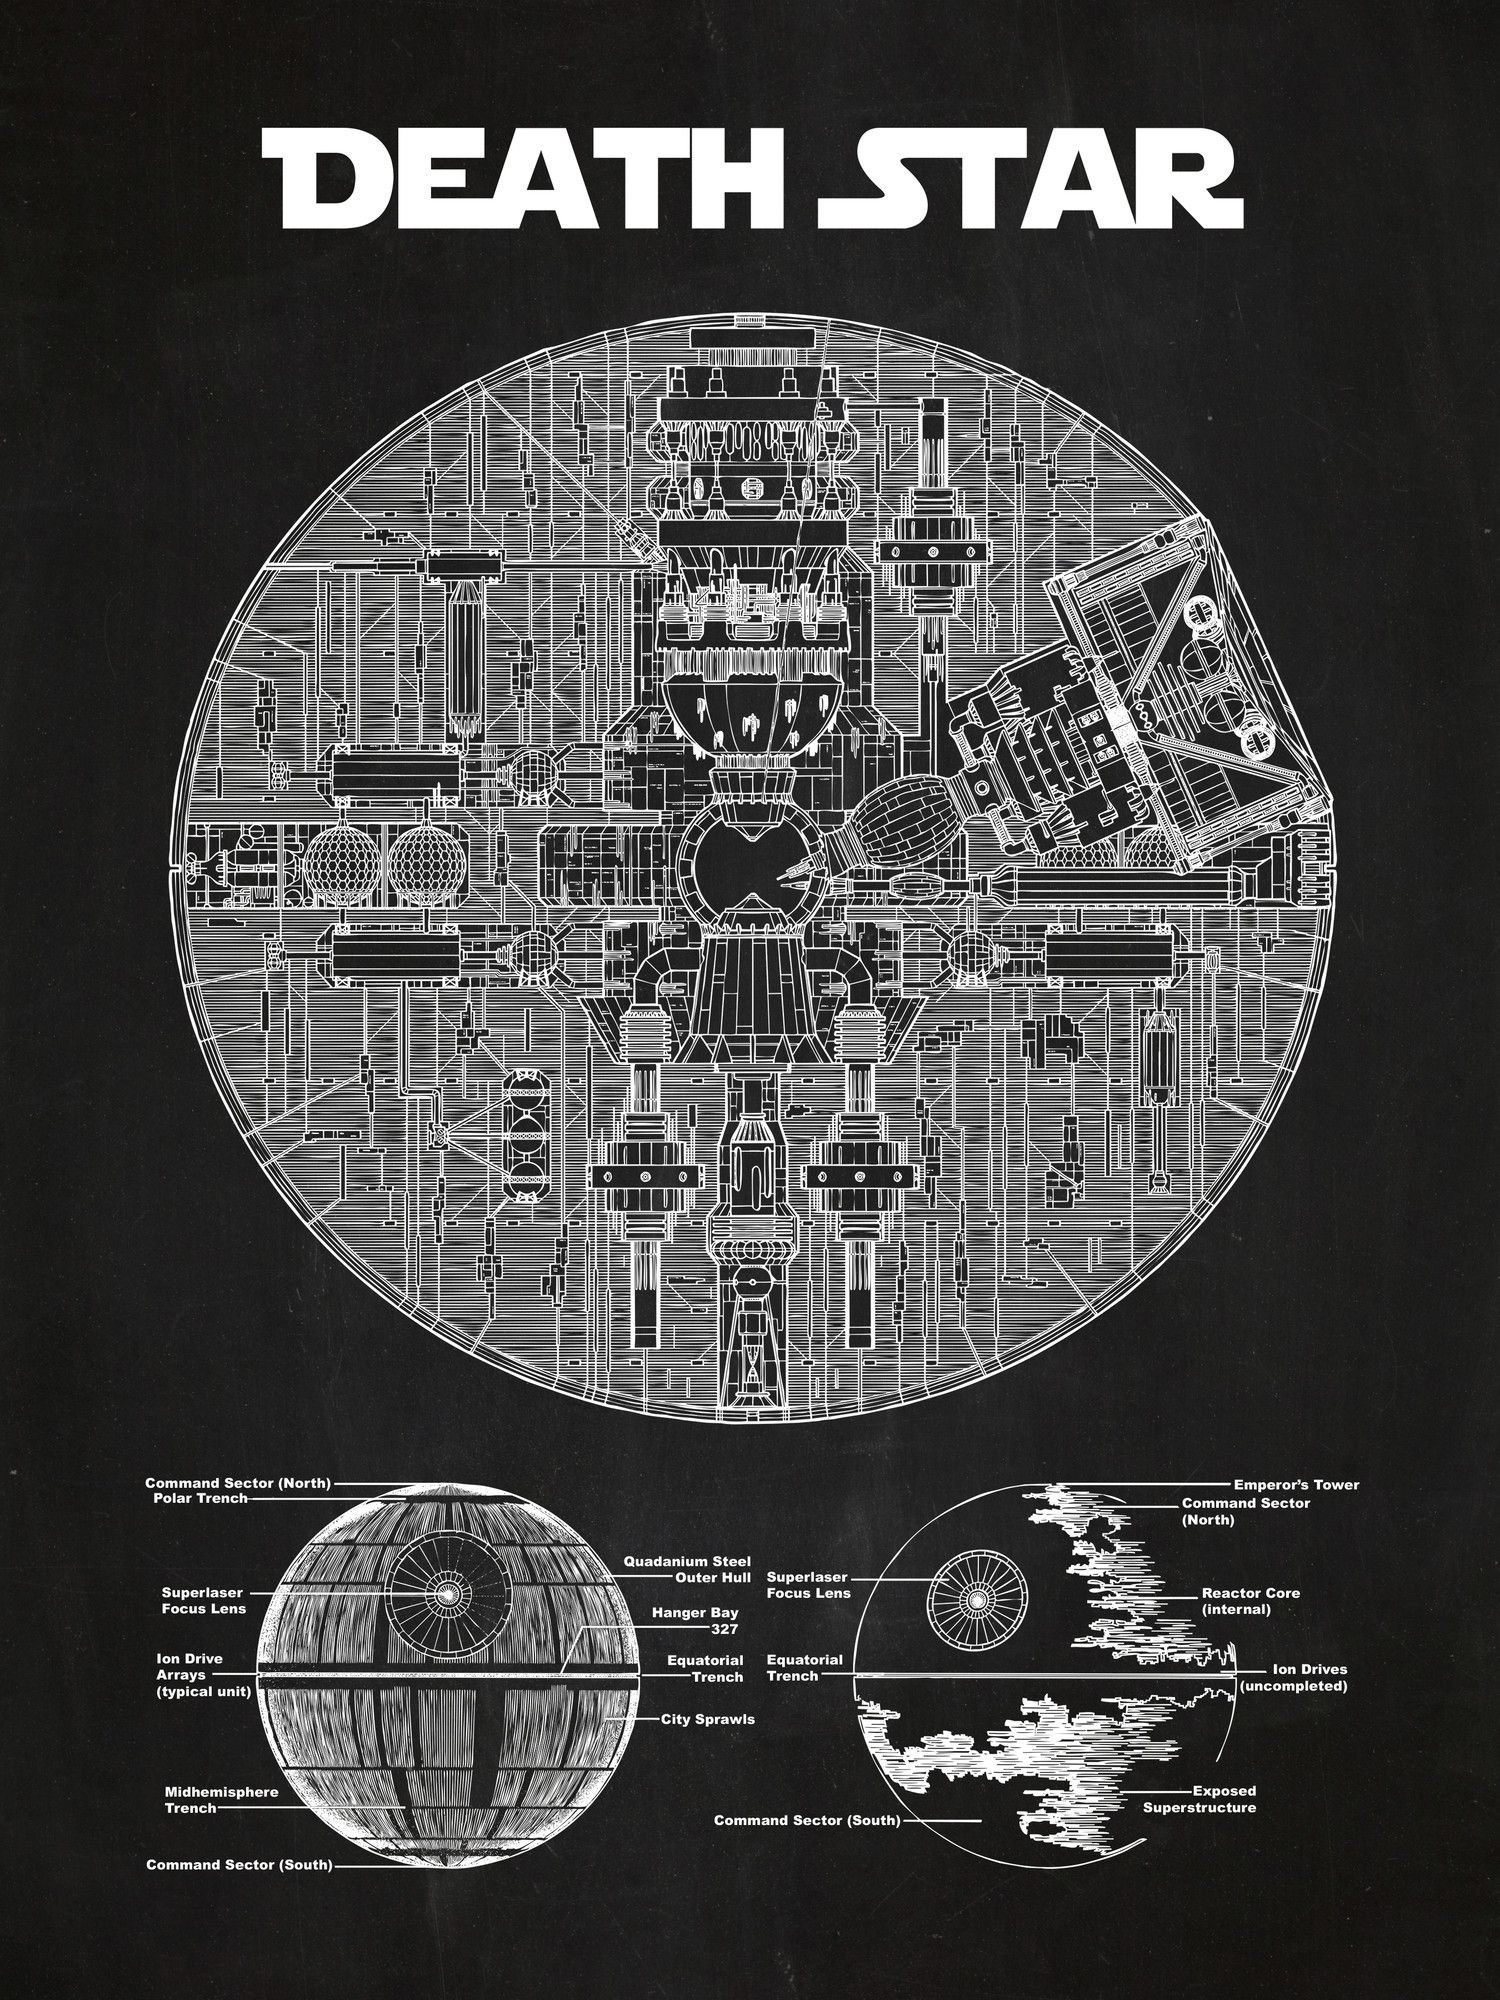 Star wars death star blueprint graphic art poster in chalkboard star wars death star blueprint graphic art poster in chalkboardwhite ink malvernweather Gallery